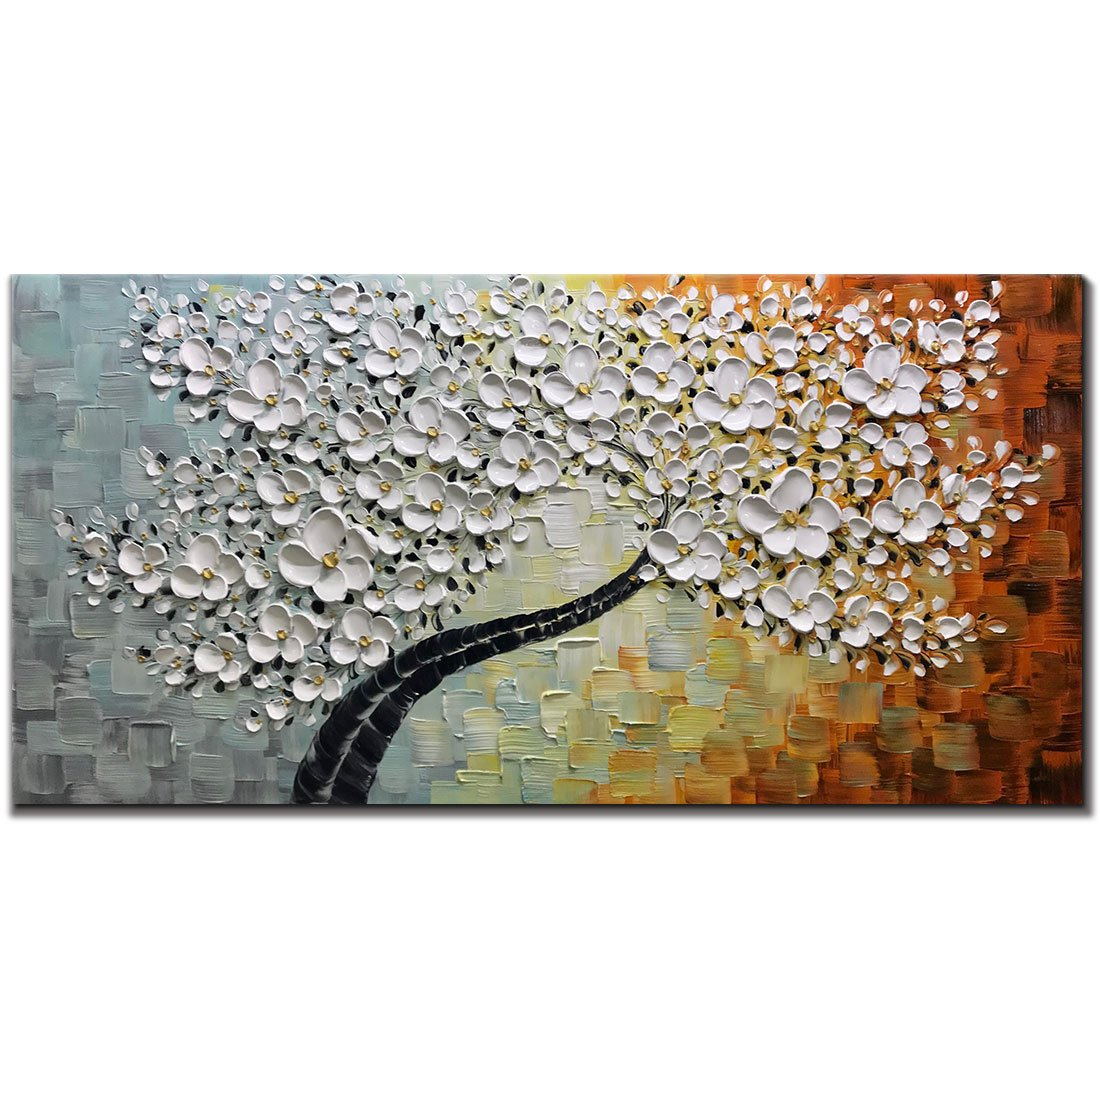 V-inspire Abstract Paintings, 20x40 Inch Paintings Oil Hand Painting 3D Hand-Painted On Canvas Abstract Artwork Art Wood Inside Framed Hanging Wall Decoration Abstract Painting